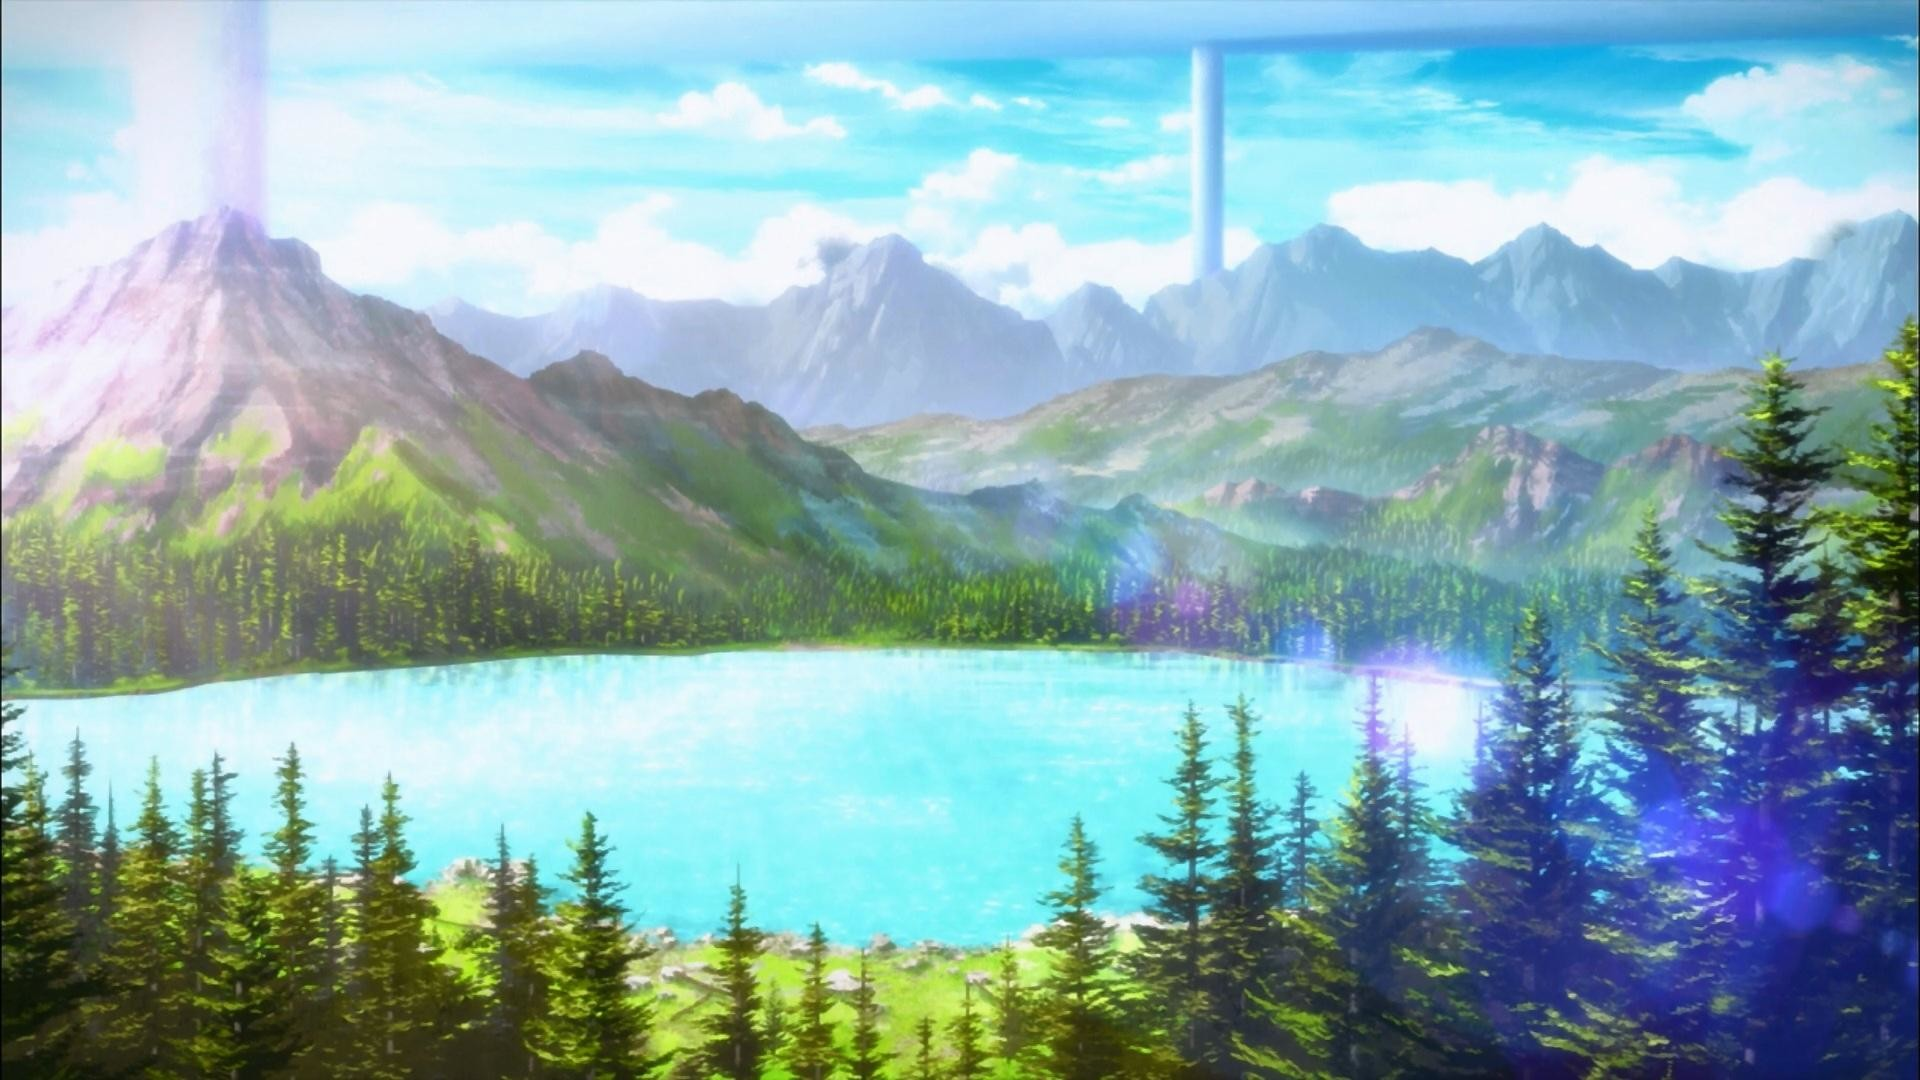 wallpaper.wiki-Free-Anime-Landscape-Images-PIC-WPC003803